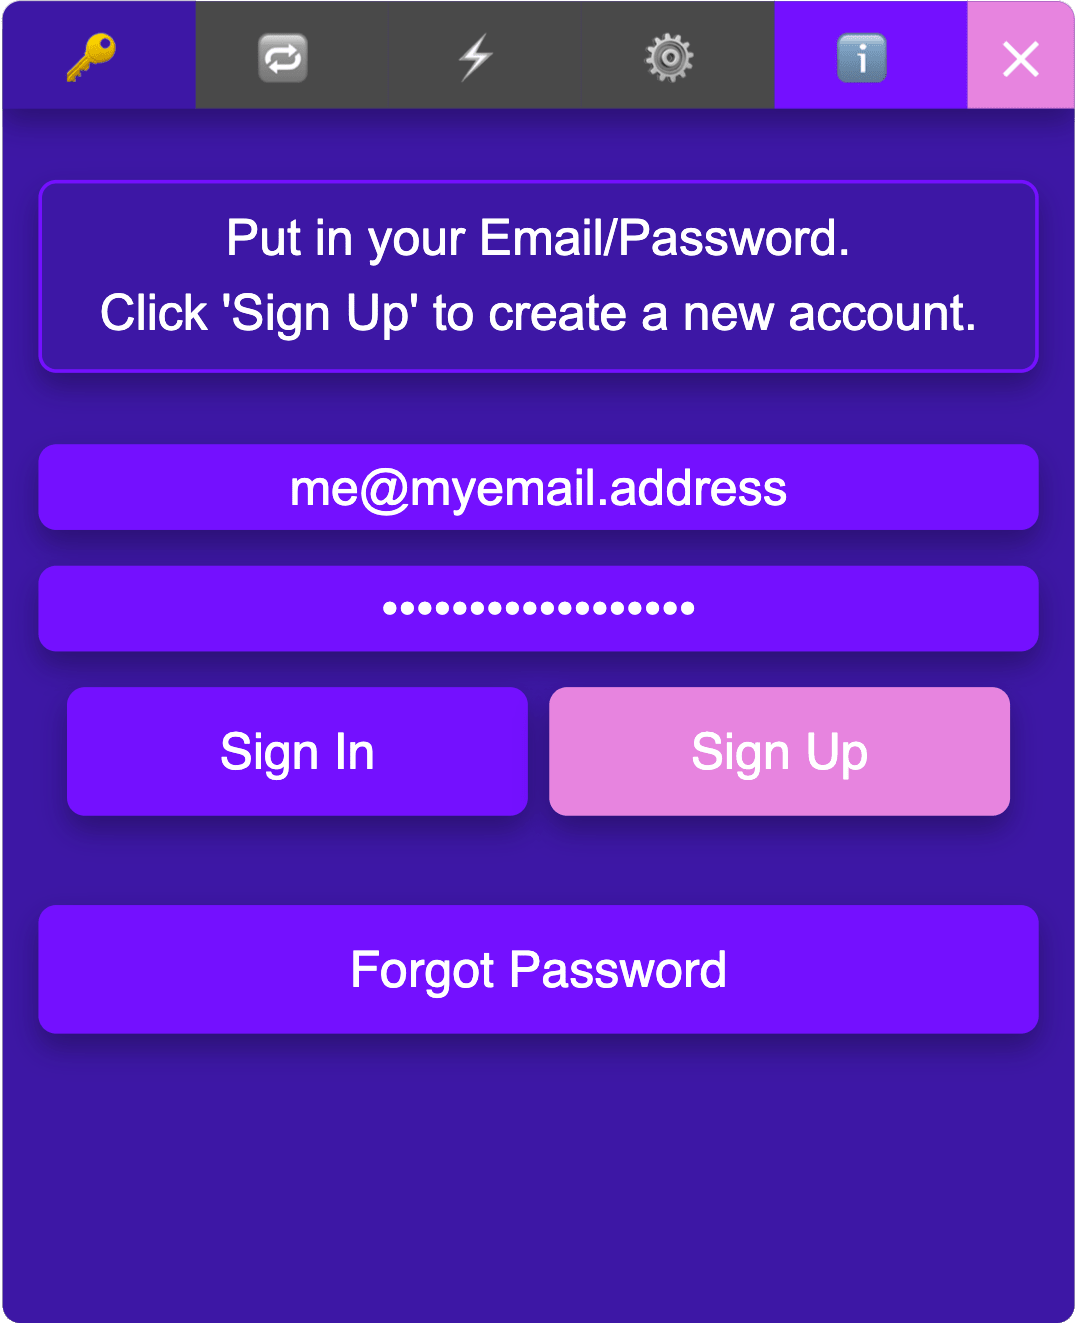 Sign up for a new account.